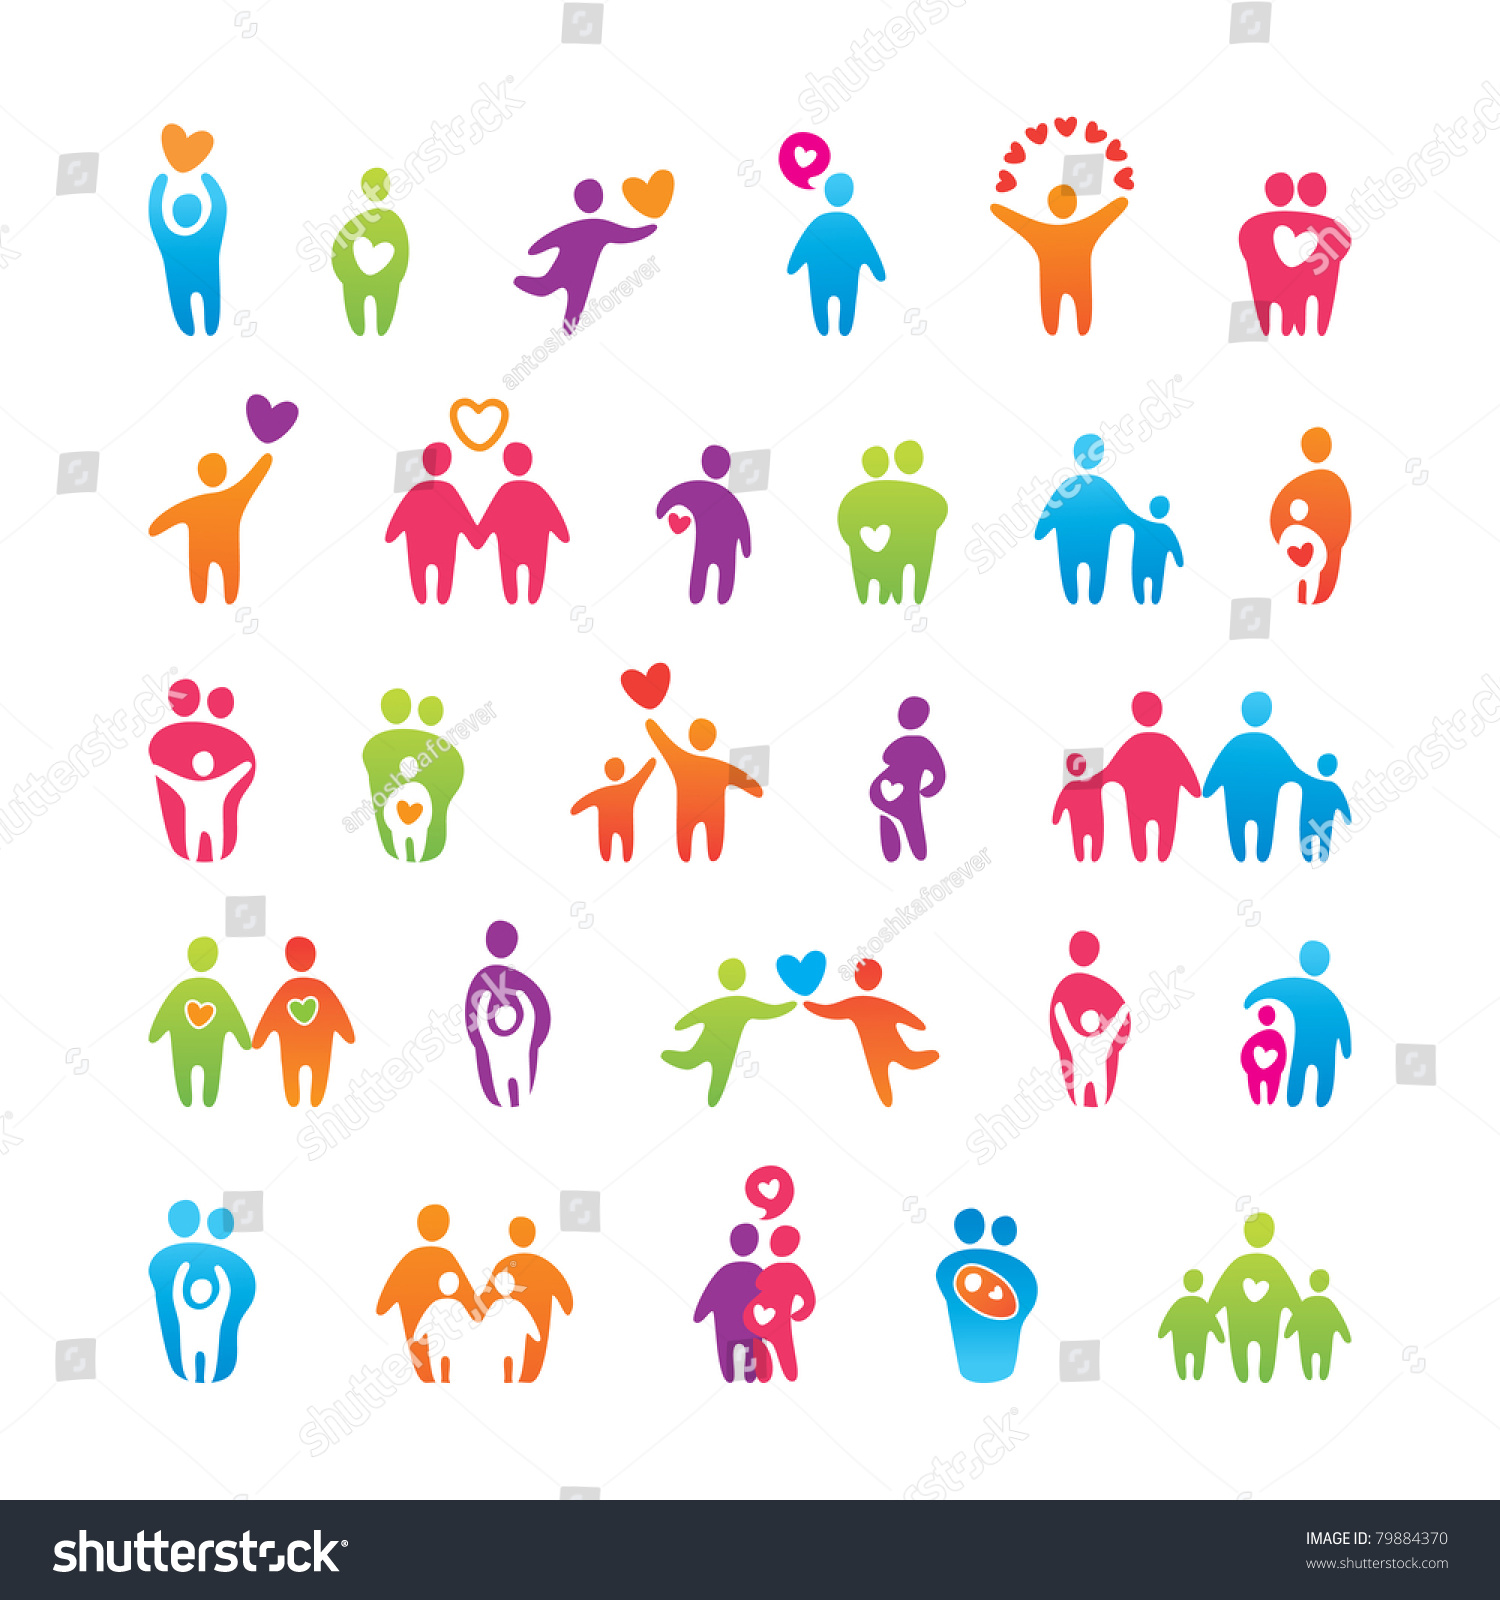 Big Vector Set Icons Love Family Stock Vector 79884370 ...